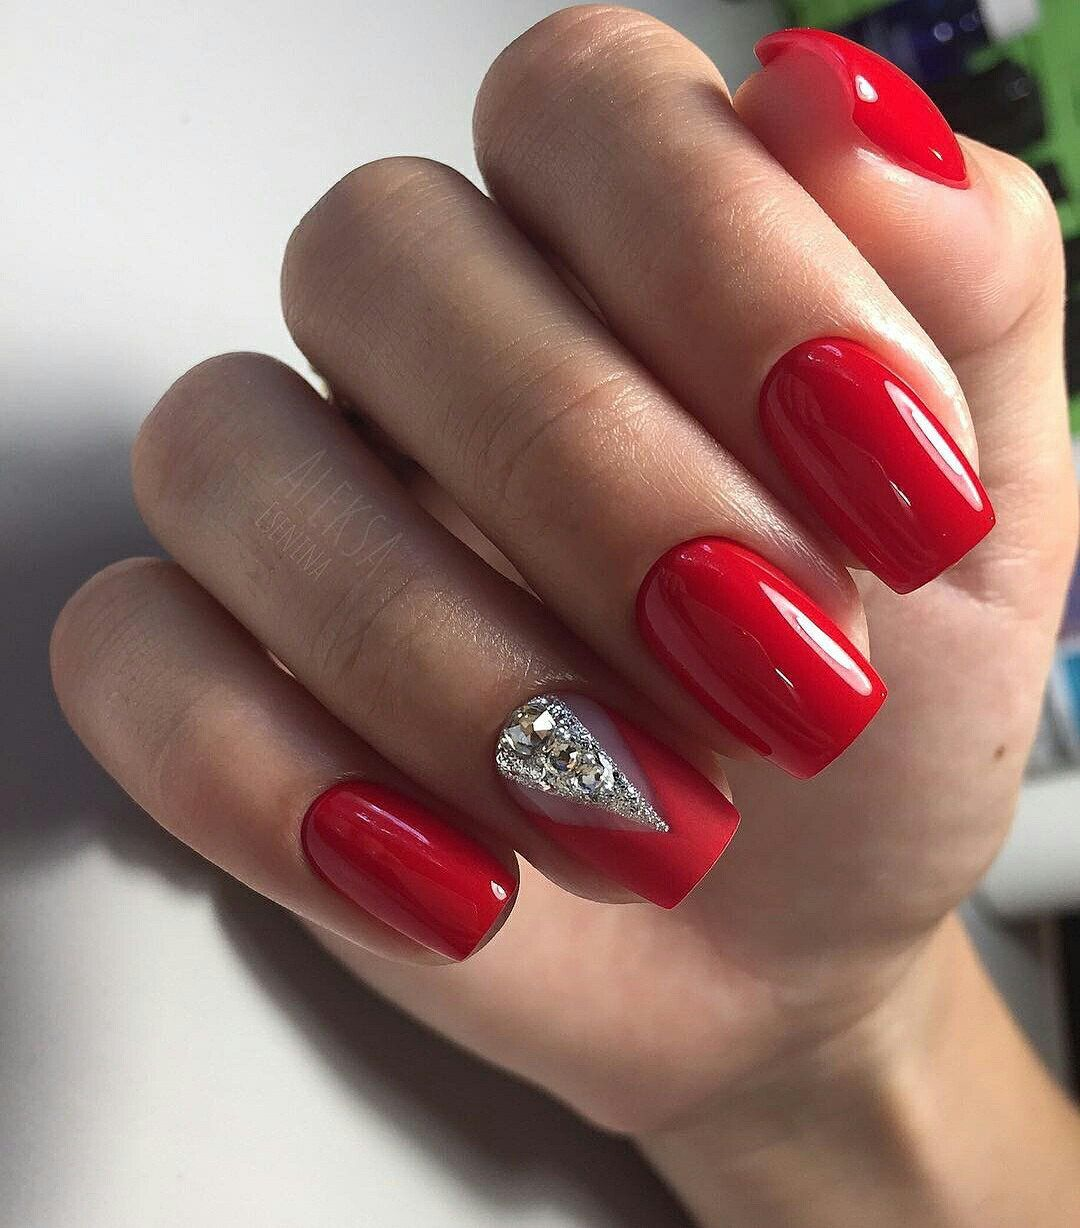 Red Nail Art Designs 2019 10 04 2019 Practical Life